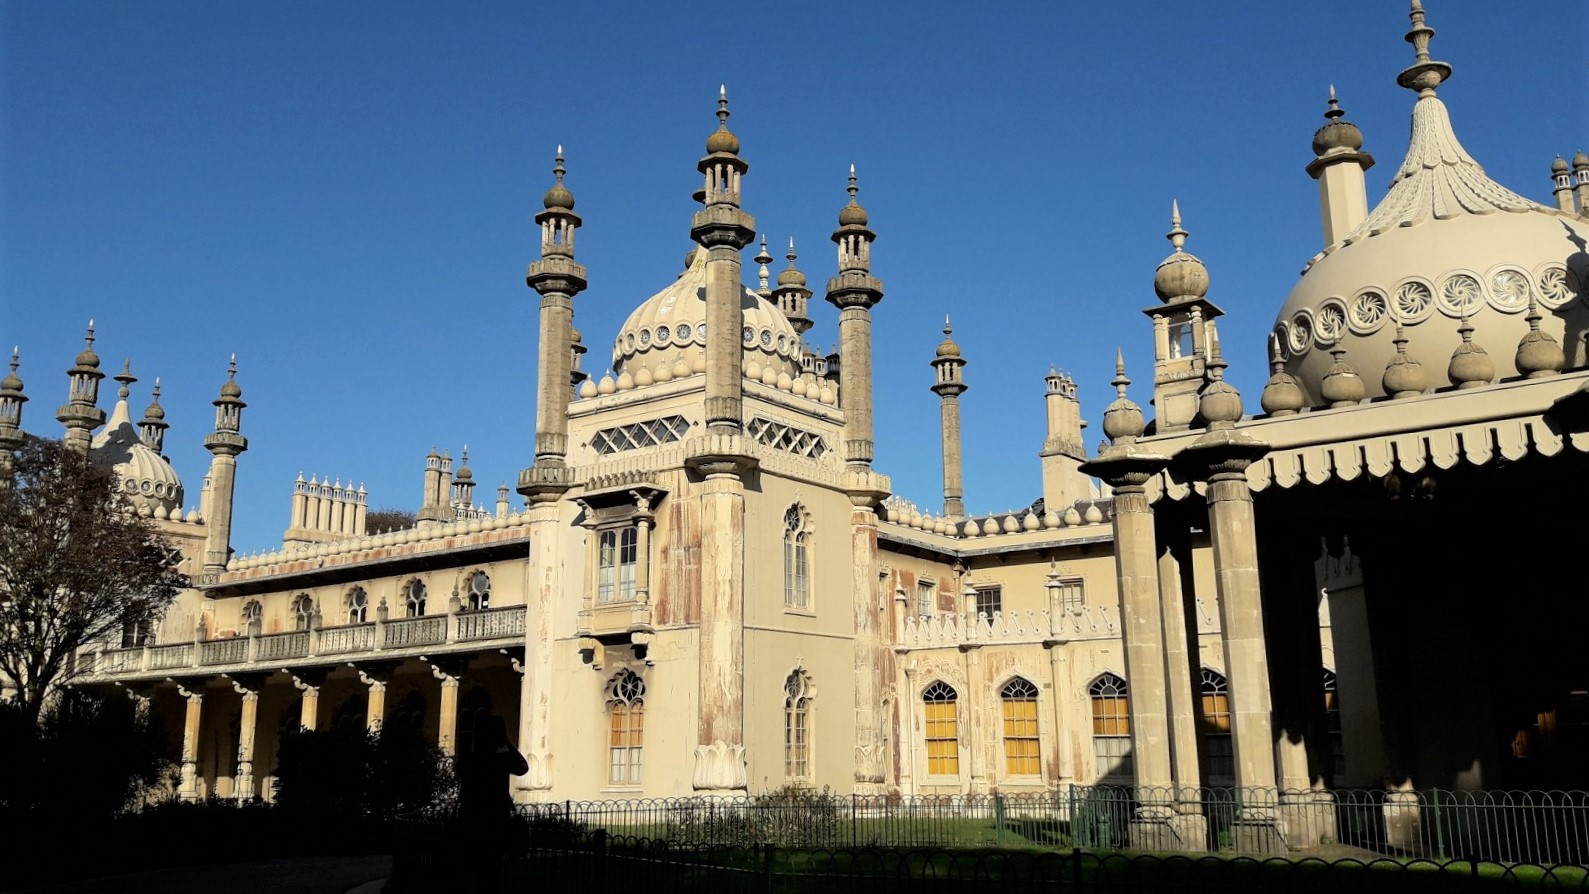 Royal Pavilion (Brighton)